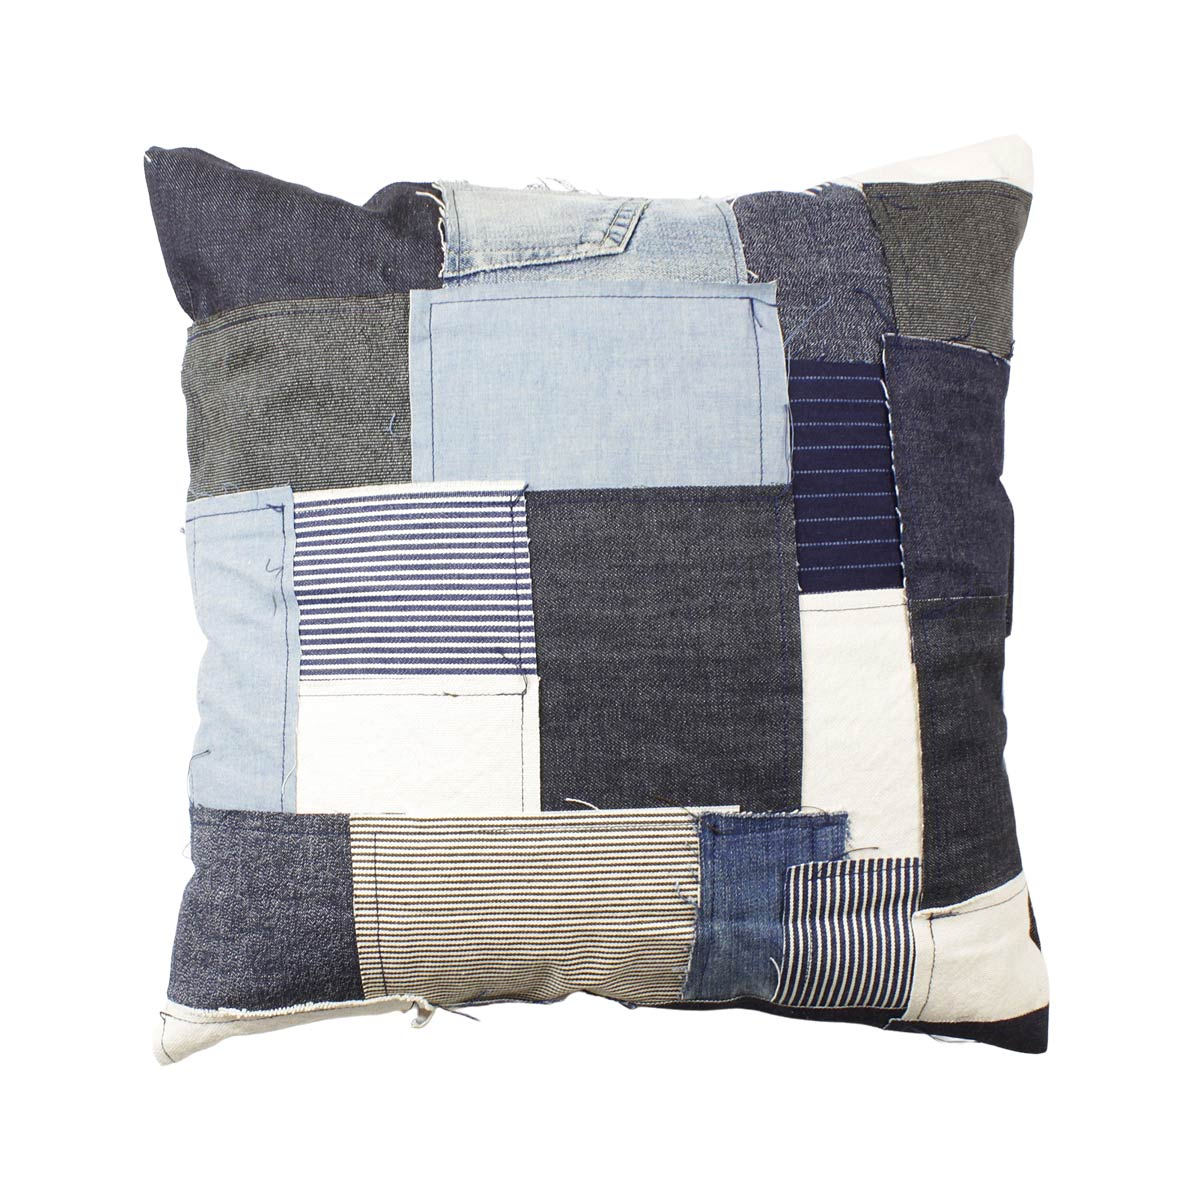 Reused Product リユースプロダクト reused patchwork cushion